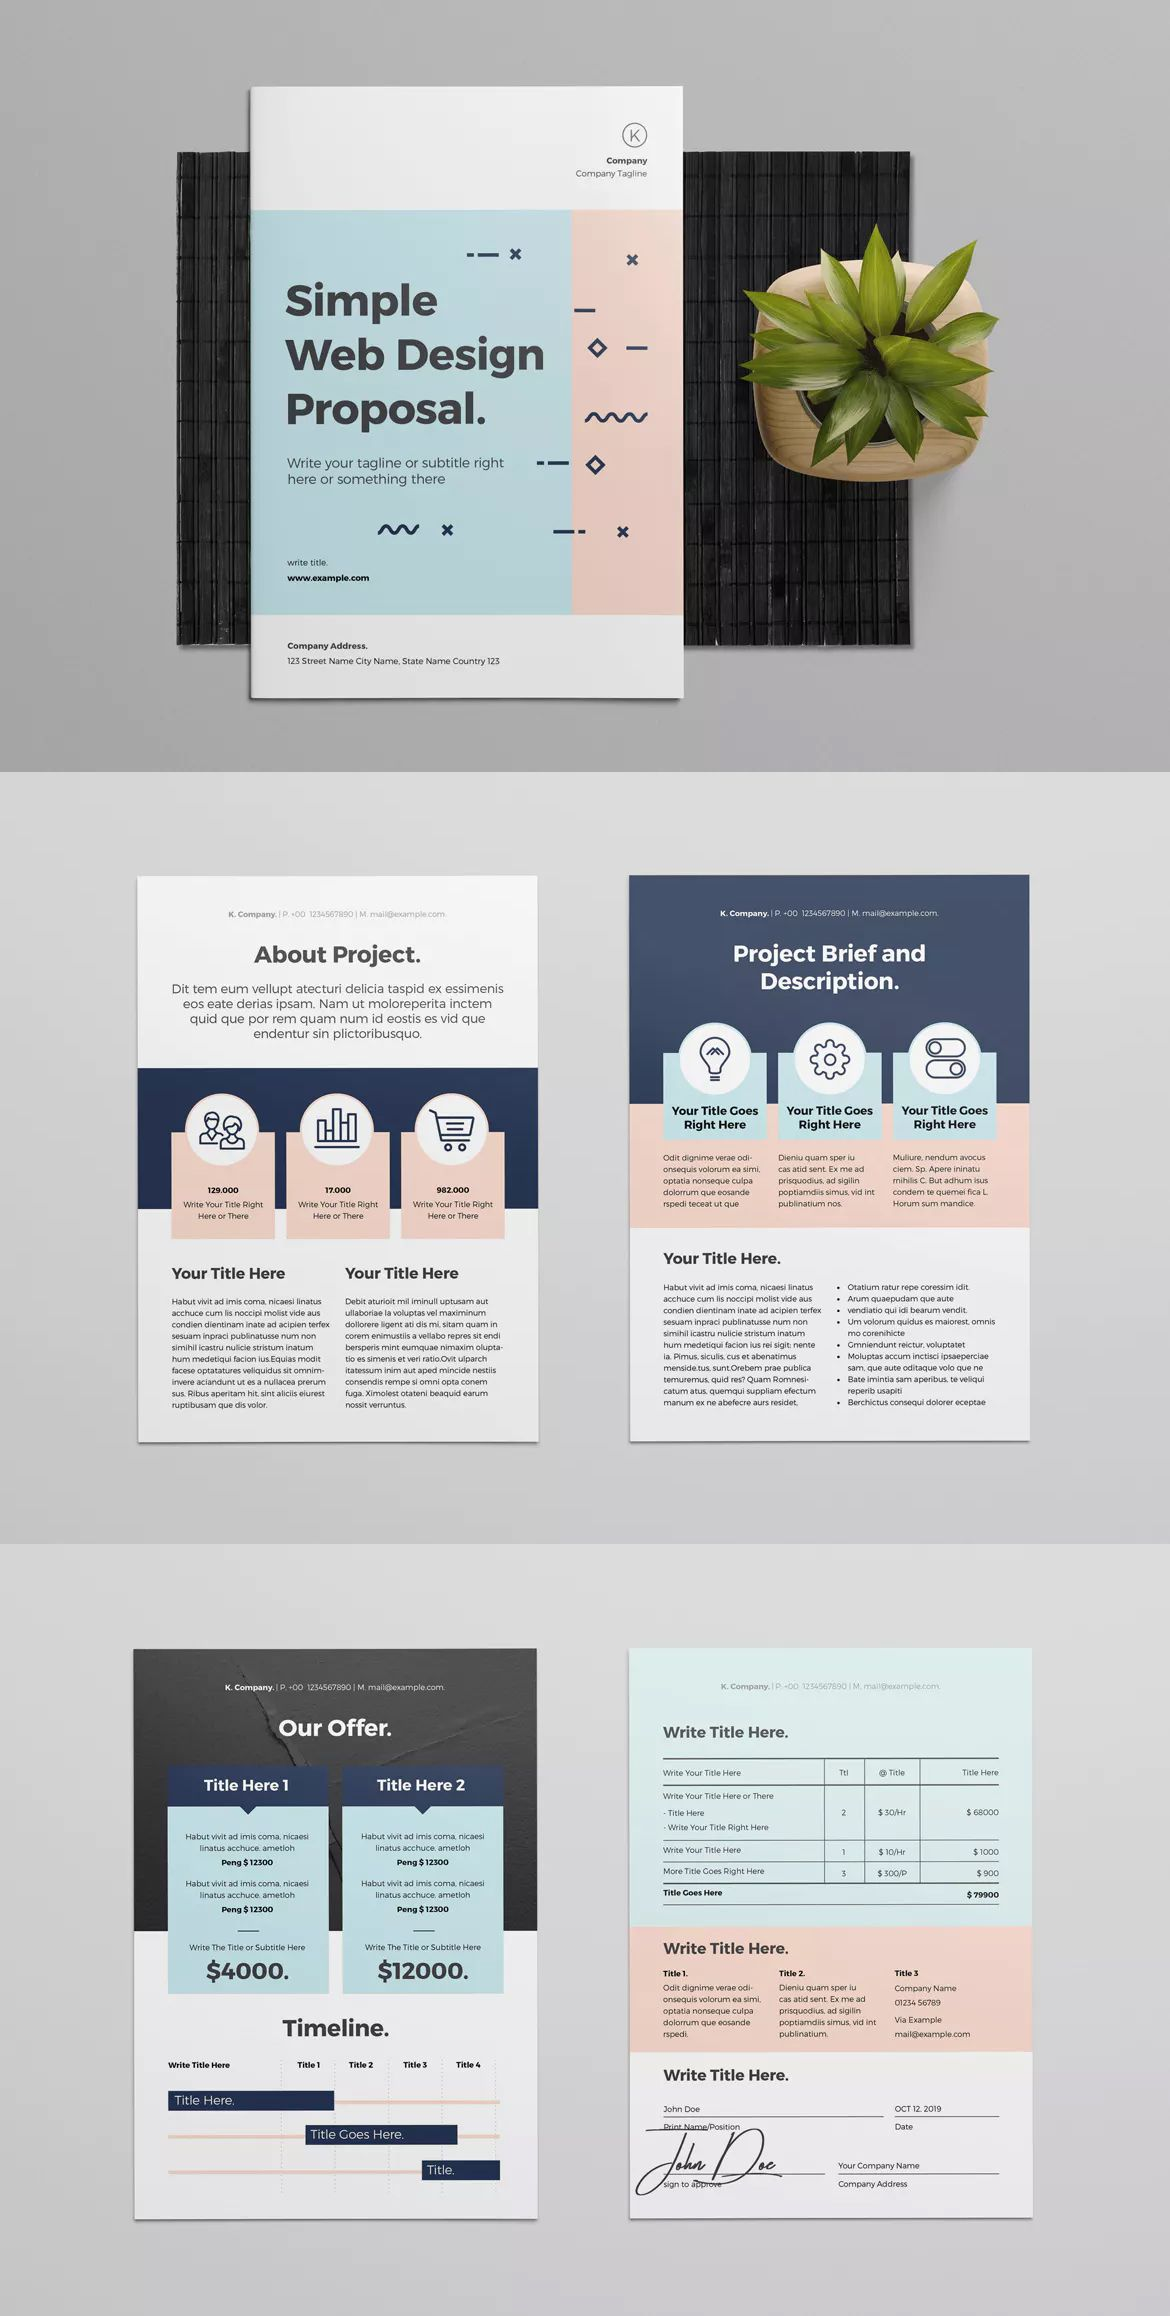 Web Design Proposal Template Indesign Indd Web Design Proposal Simple Web Design Brochure Design Layout